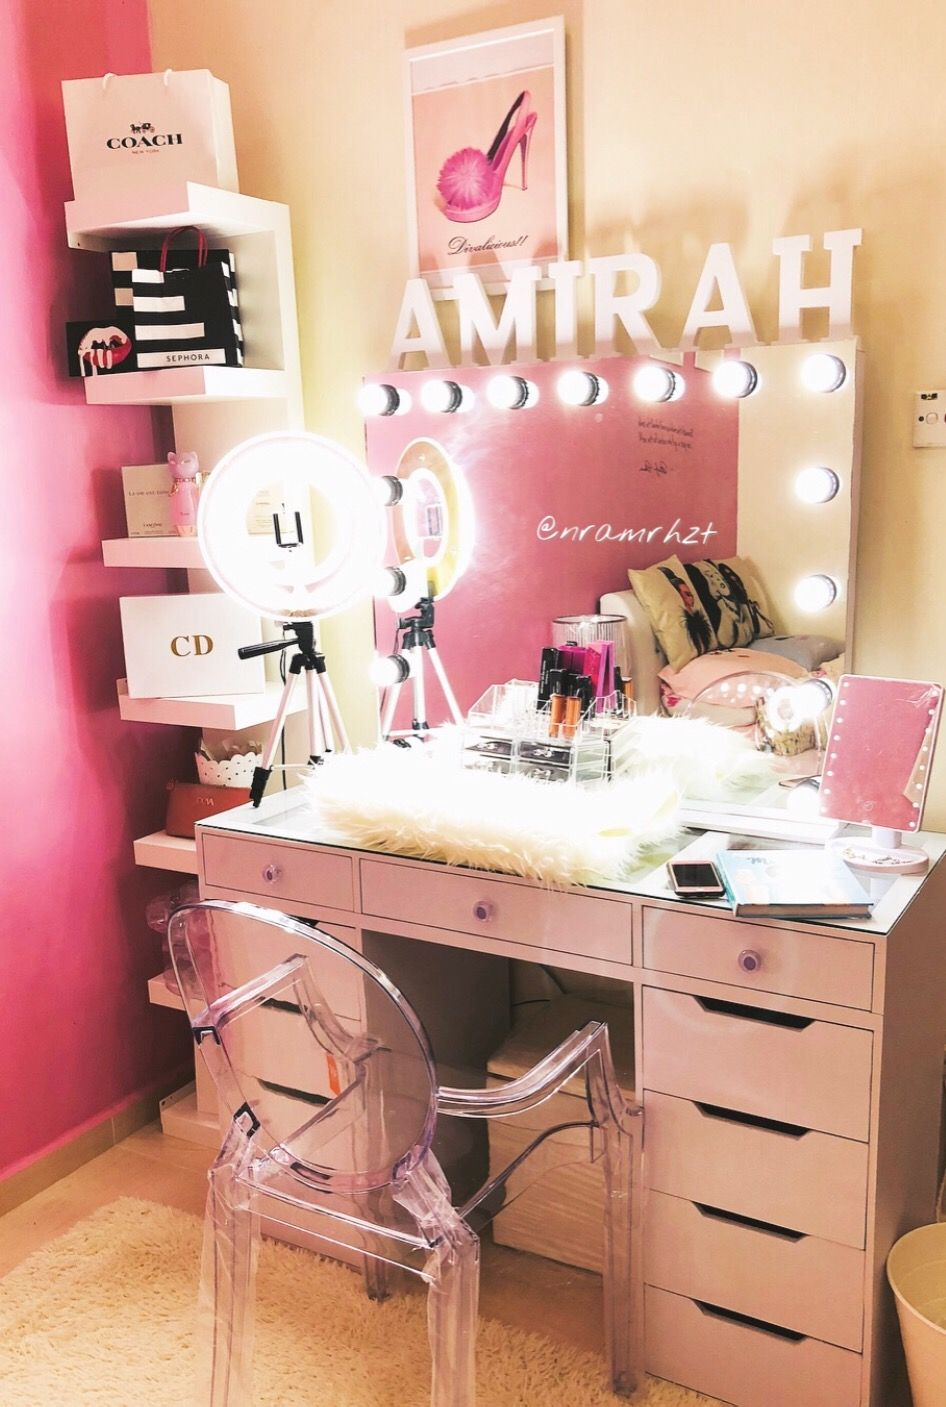 Vanity Table Vanity Mirror With Light Makeup Vanity Pink Vanity